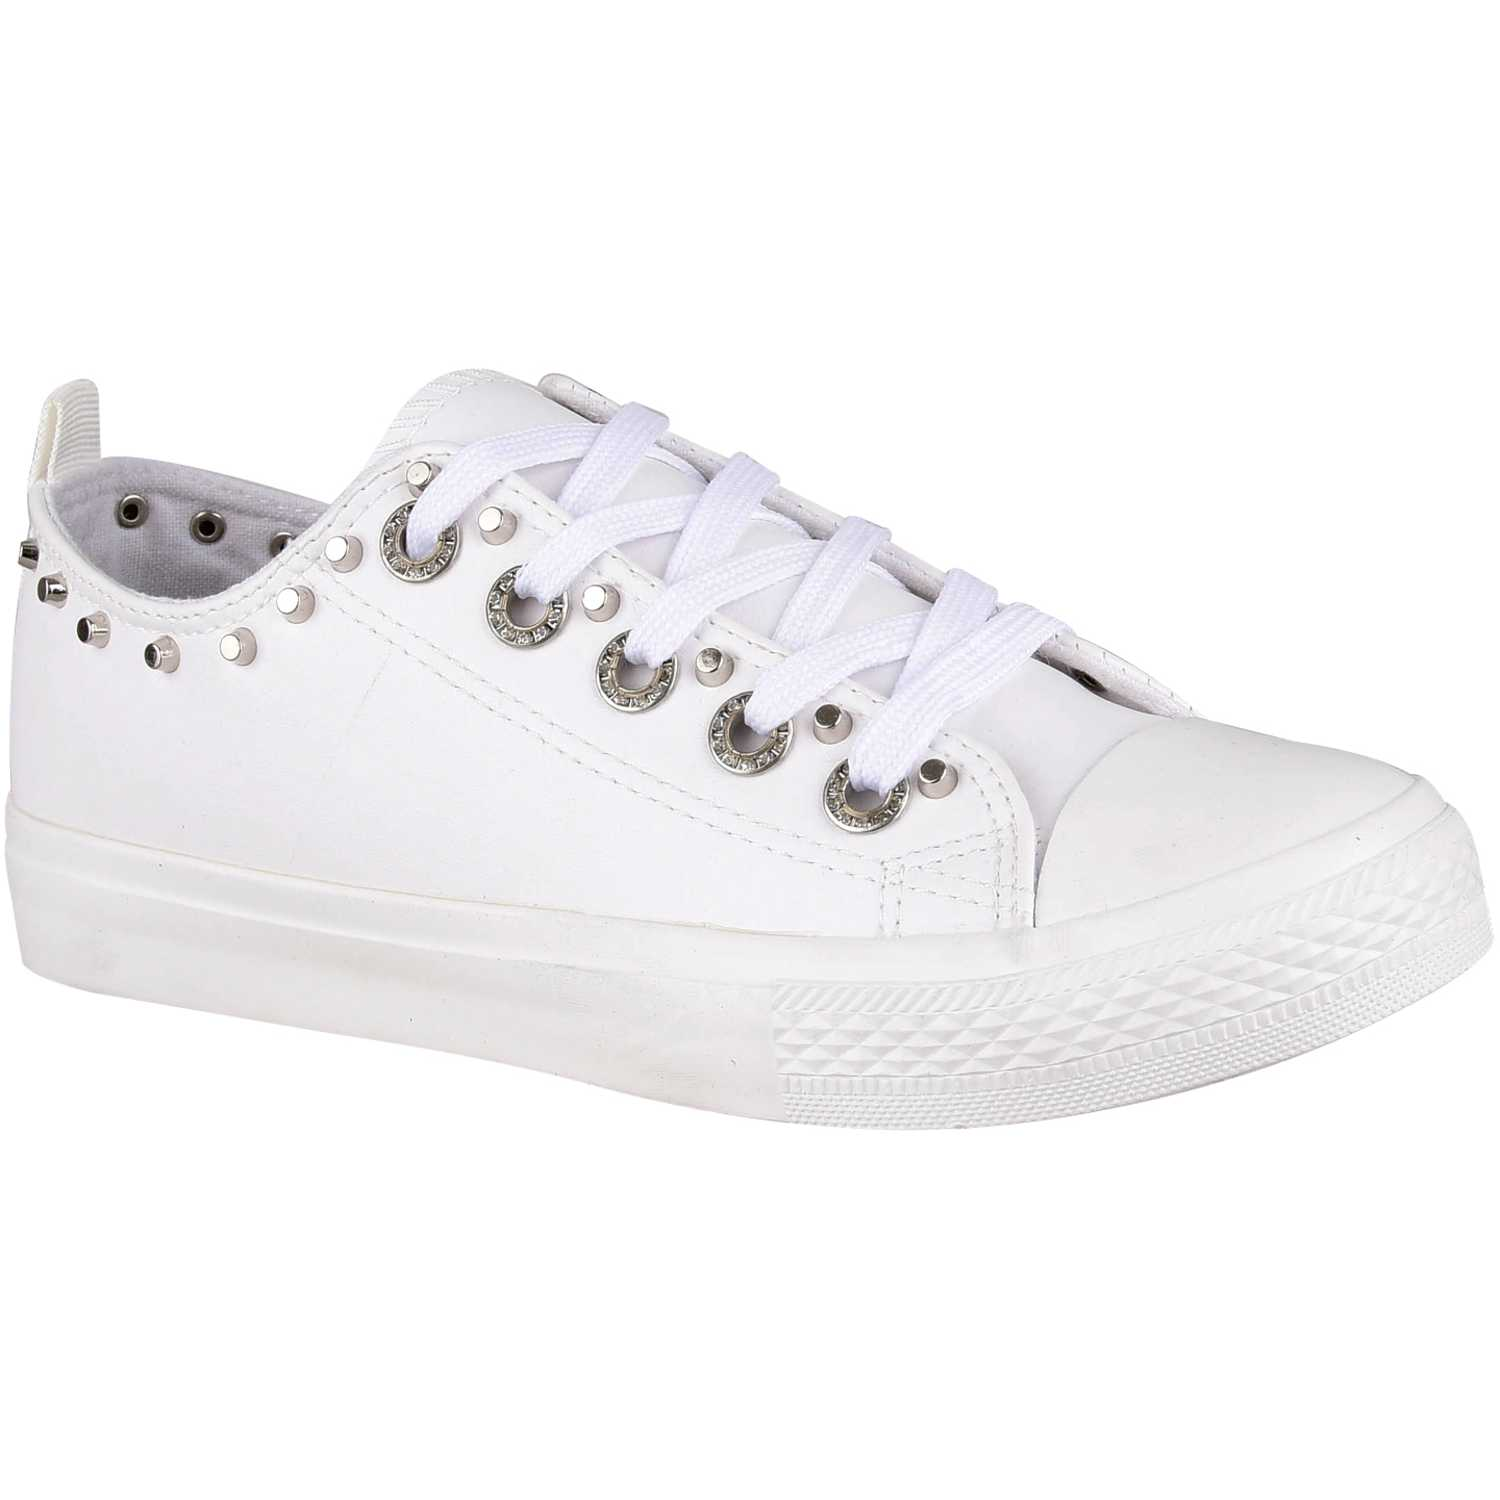 Platanitos zc 2658 Blanco Zapatillas Fashion